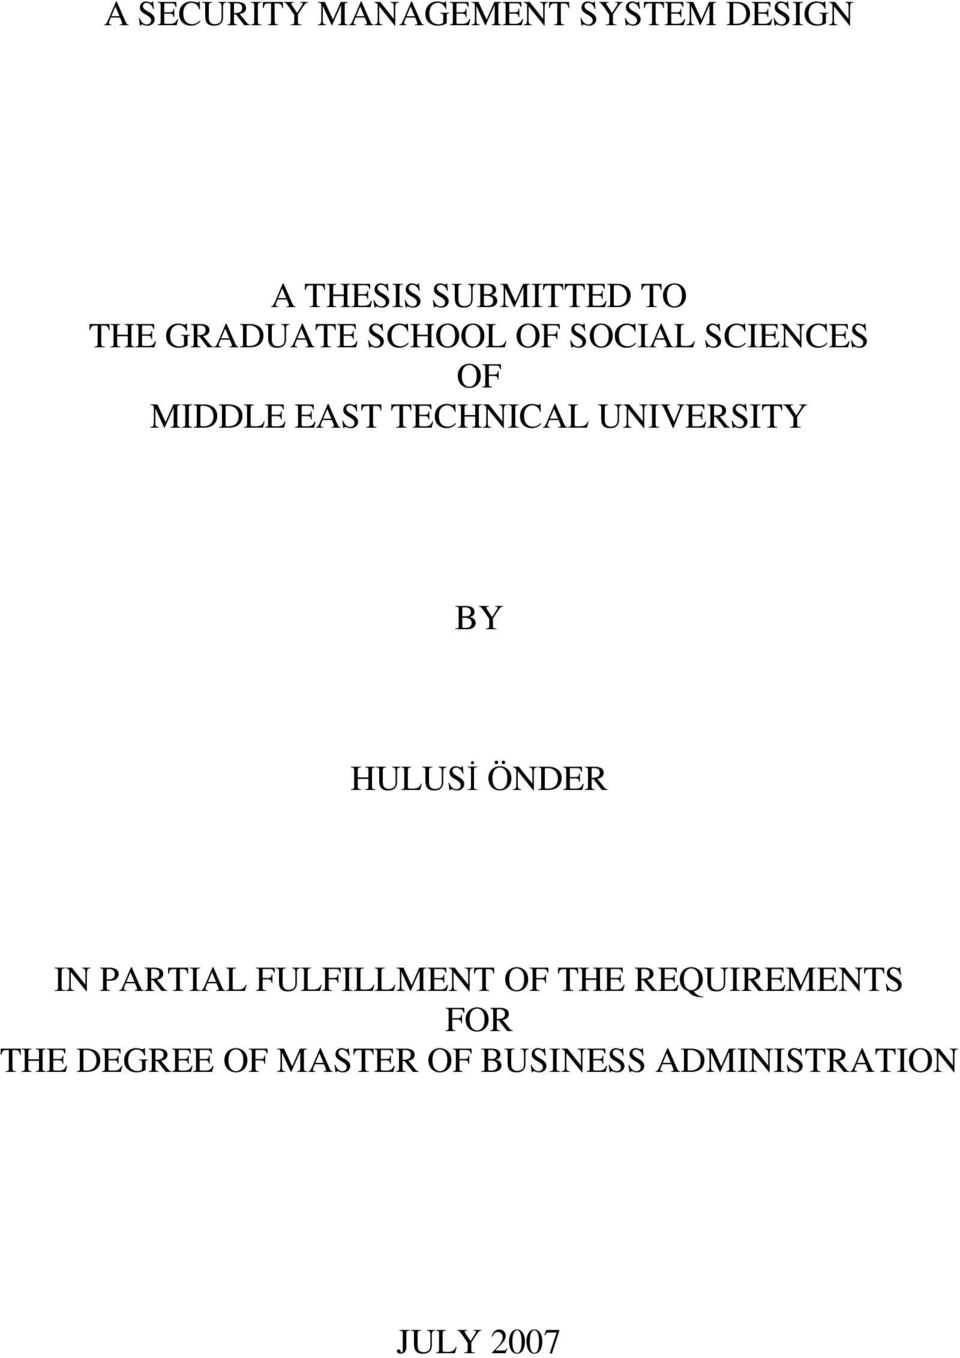 UNIVERSITY BY HULUSİ ÖNDER IN PARTIAL FULFILLMENT OF THE